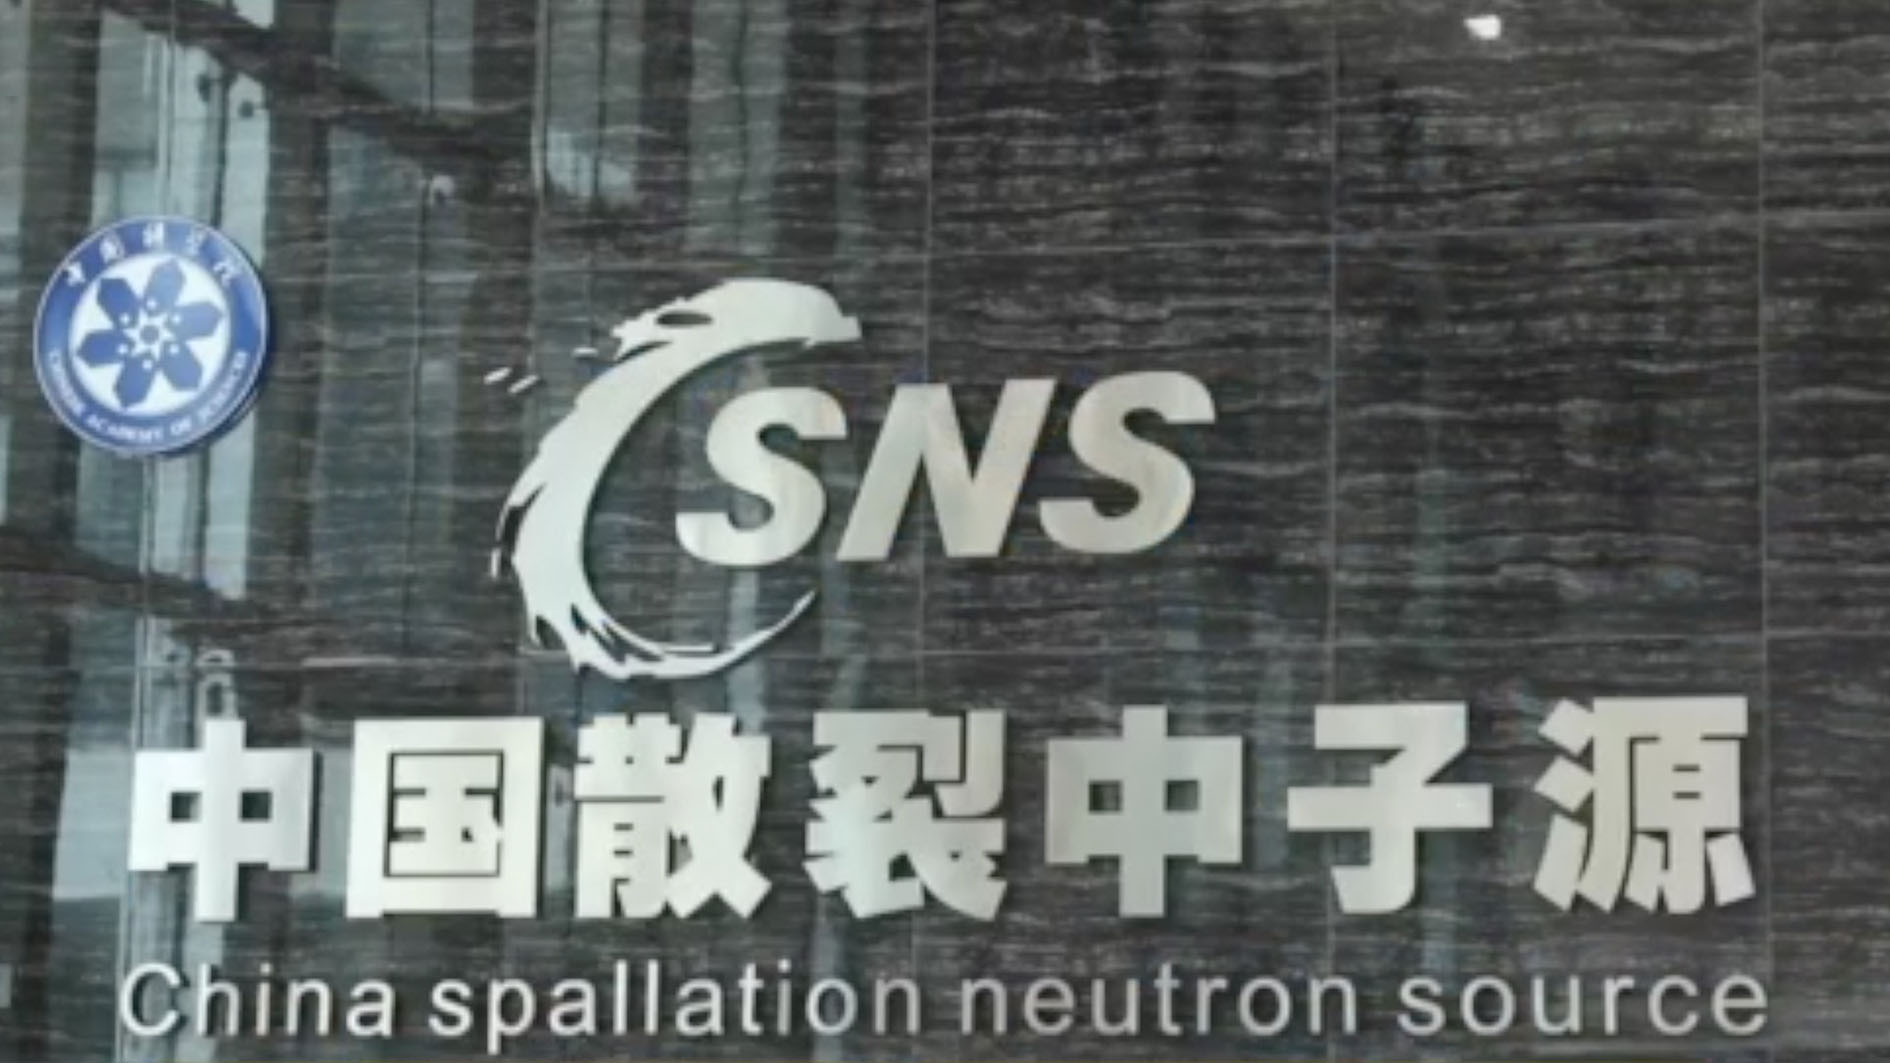 China's neutron source acts on fuller data pictures